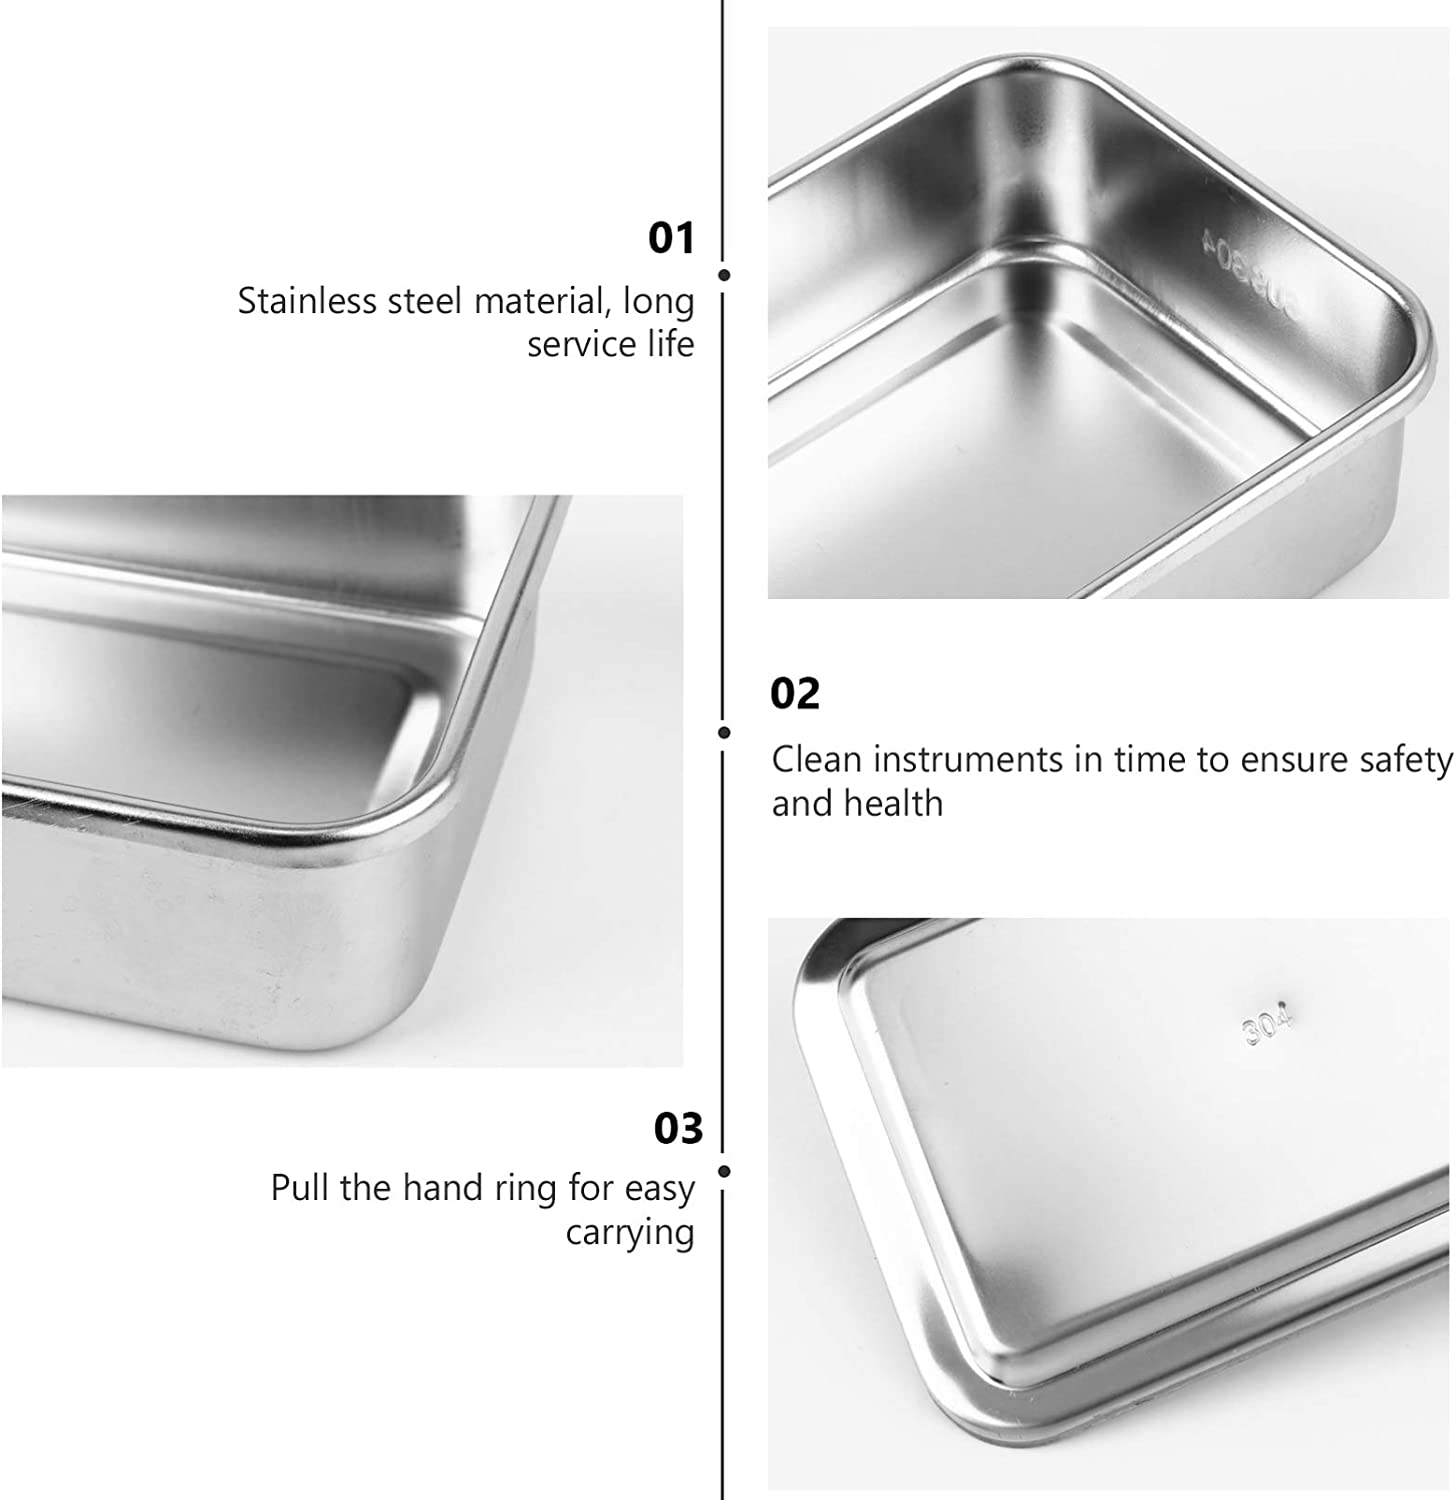 Experiment Tray Clinical Instrument Tray Device Square Trays with Cover 6 Inch Hemobllo Stainless Steel Instrument Tray